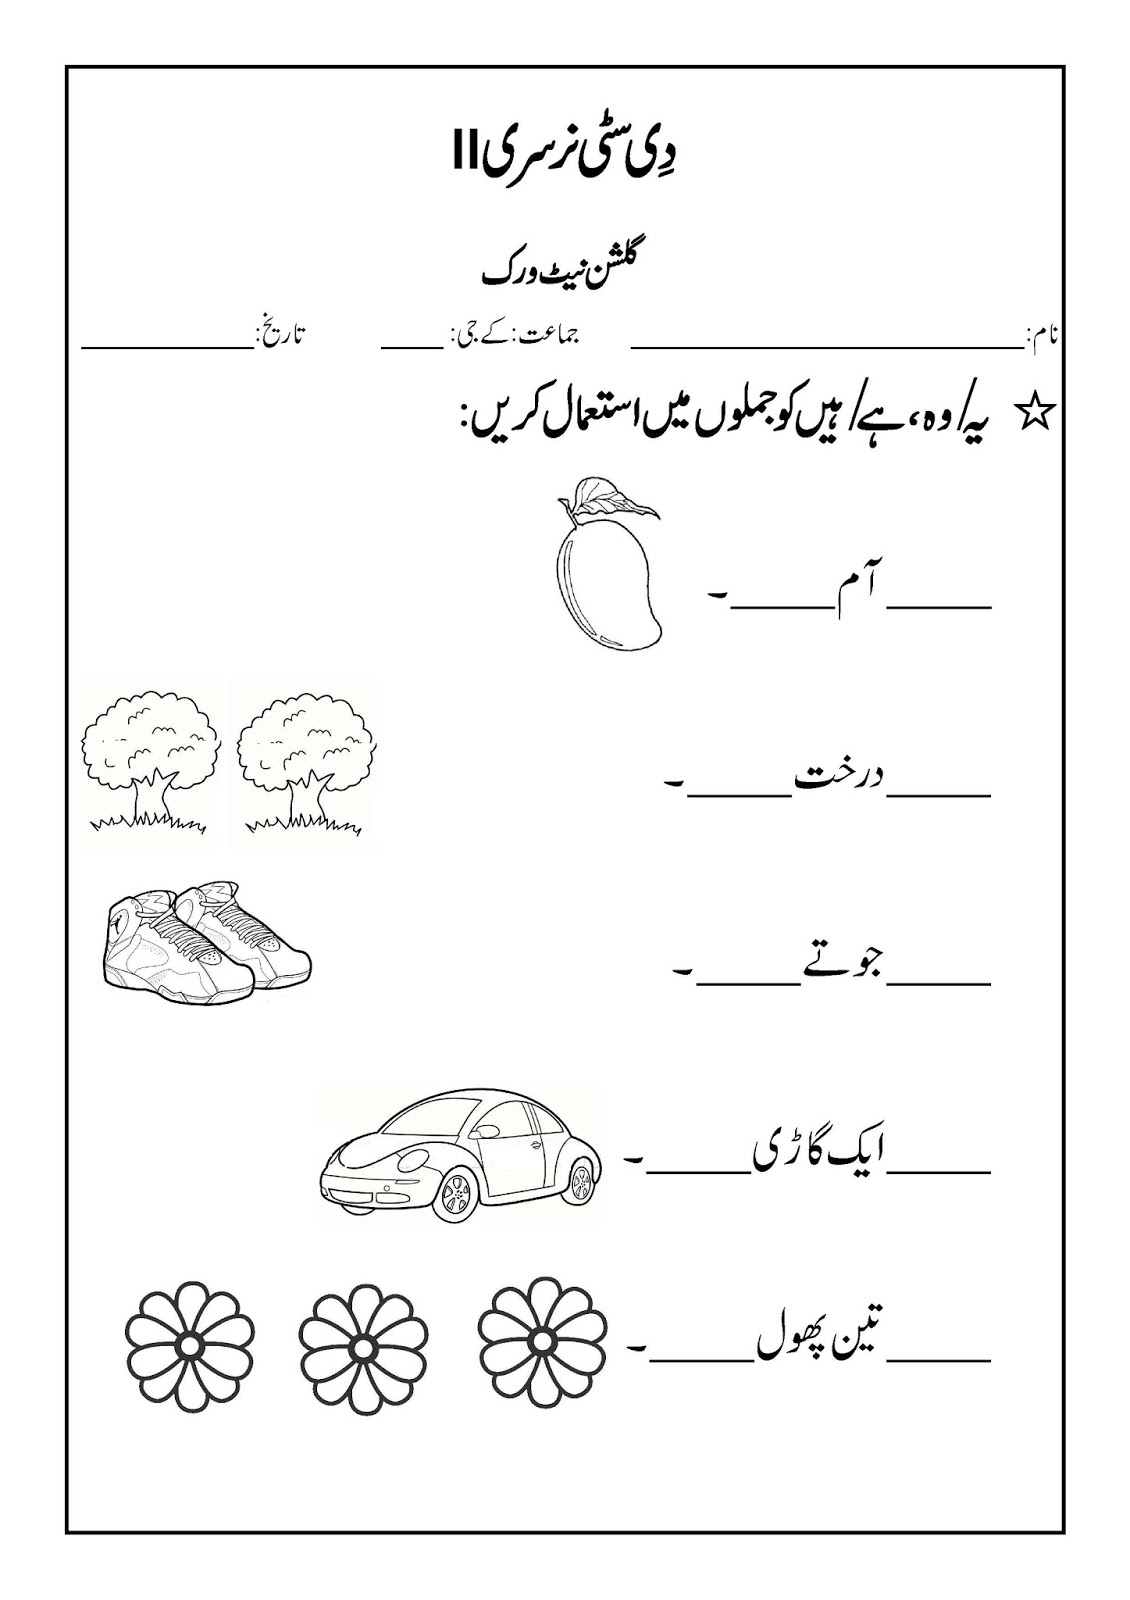 small resolution of Worksheet For Class 2 Urdu   Printable Worksheets and Activities for  Teachers